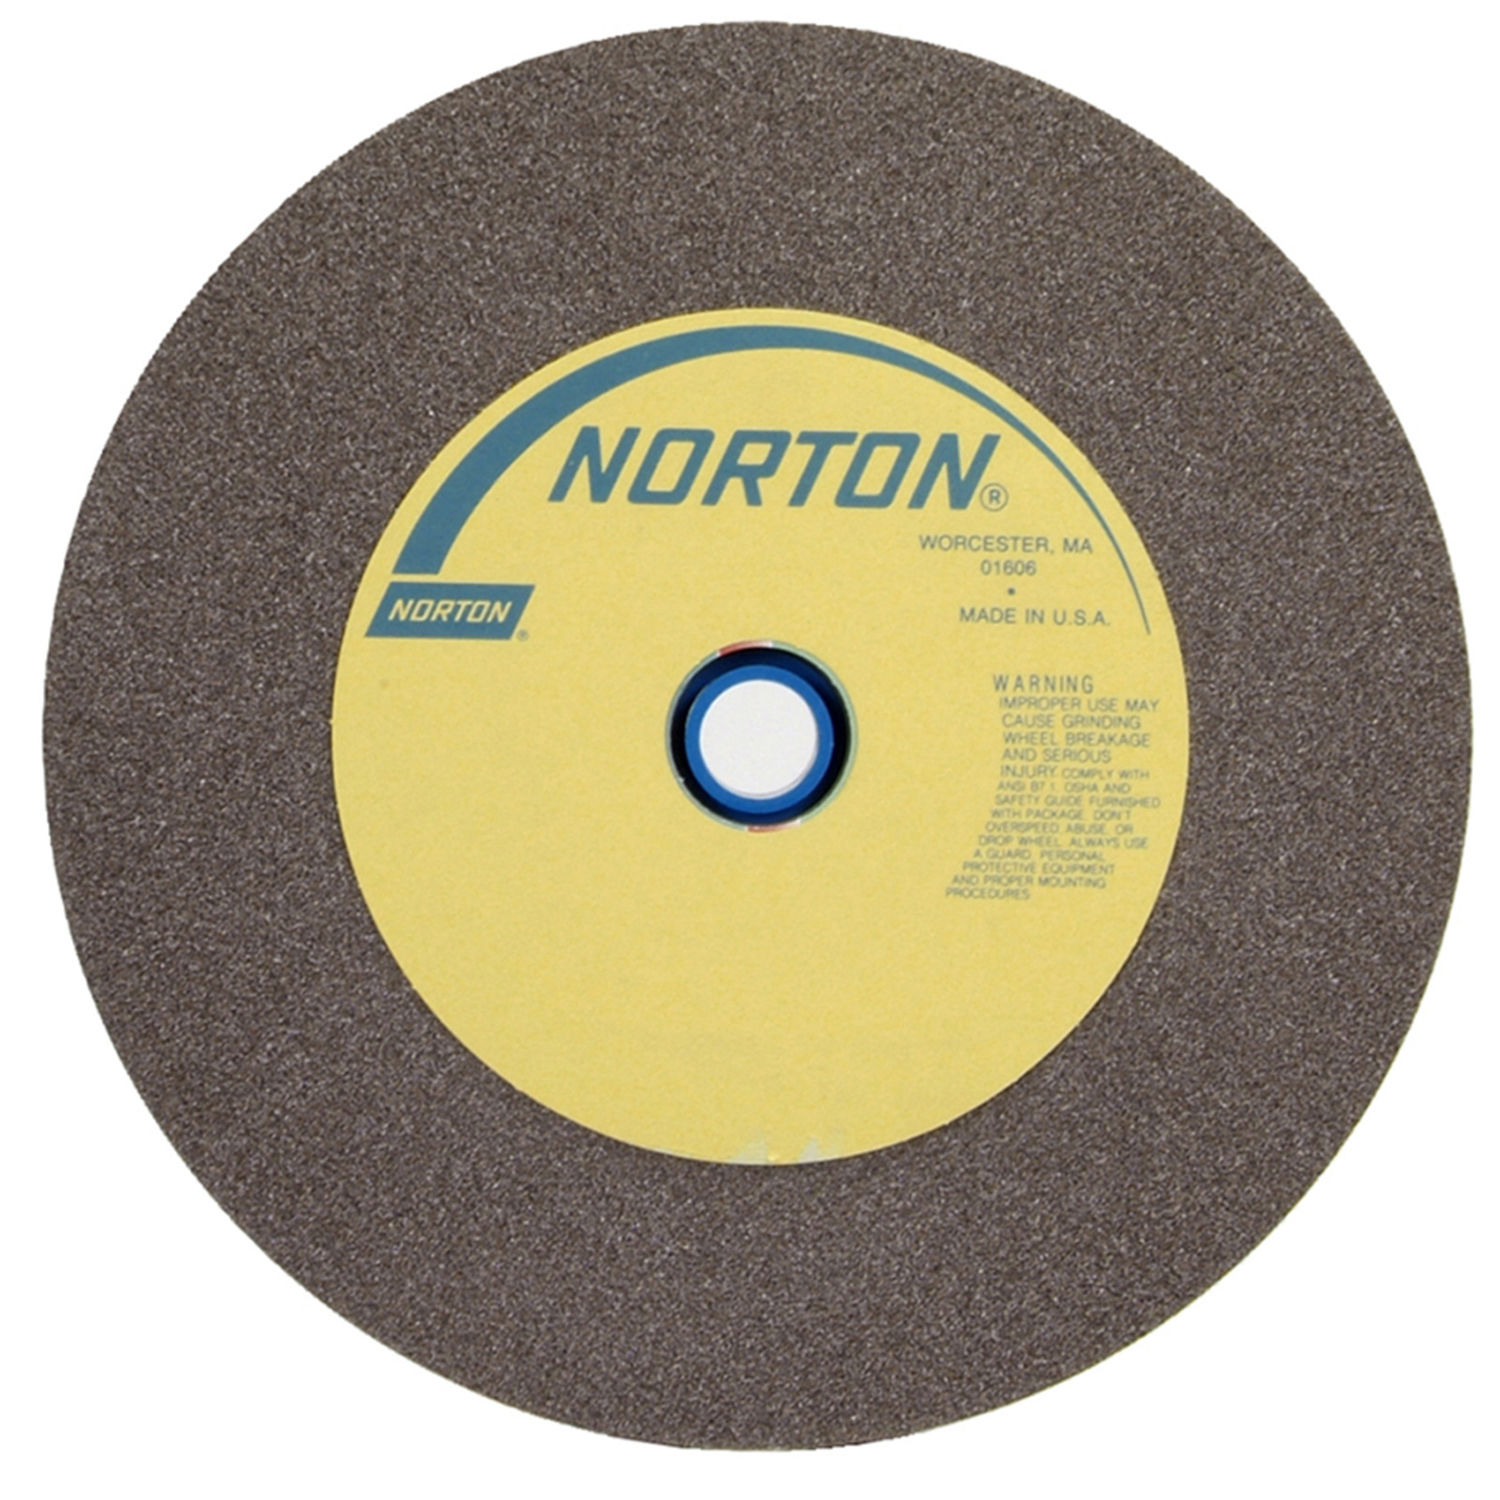 Pleasing Abrasives Grinding Cutting Grinding Cutoff Wheels Gmtry Best Dining Table And Chair Ideas Images Gmtryco